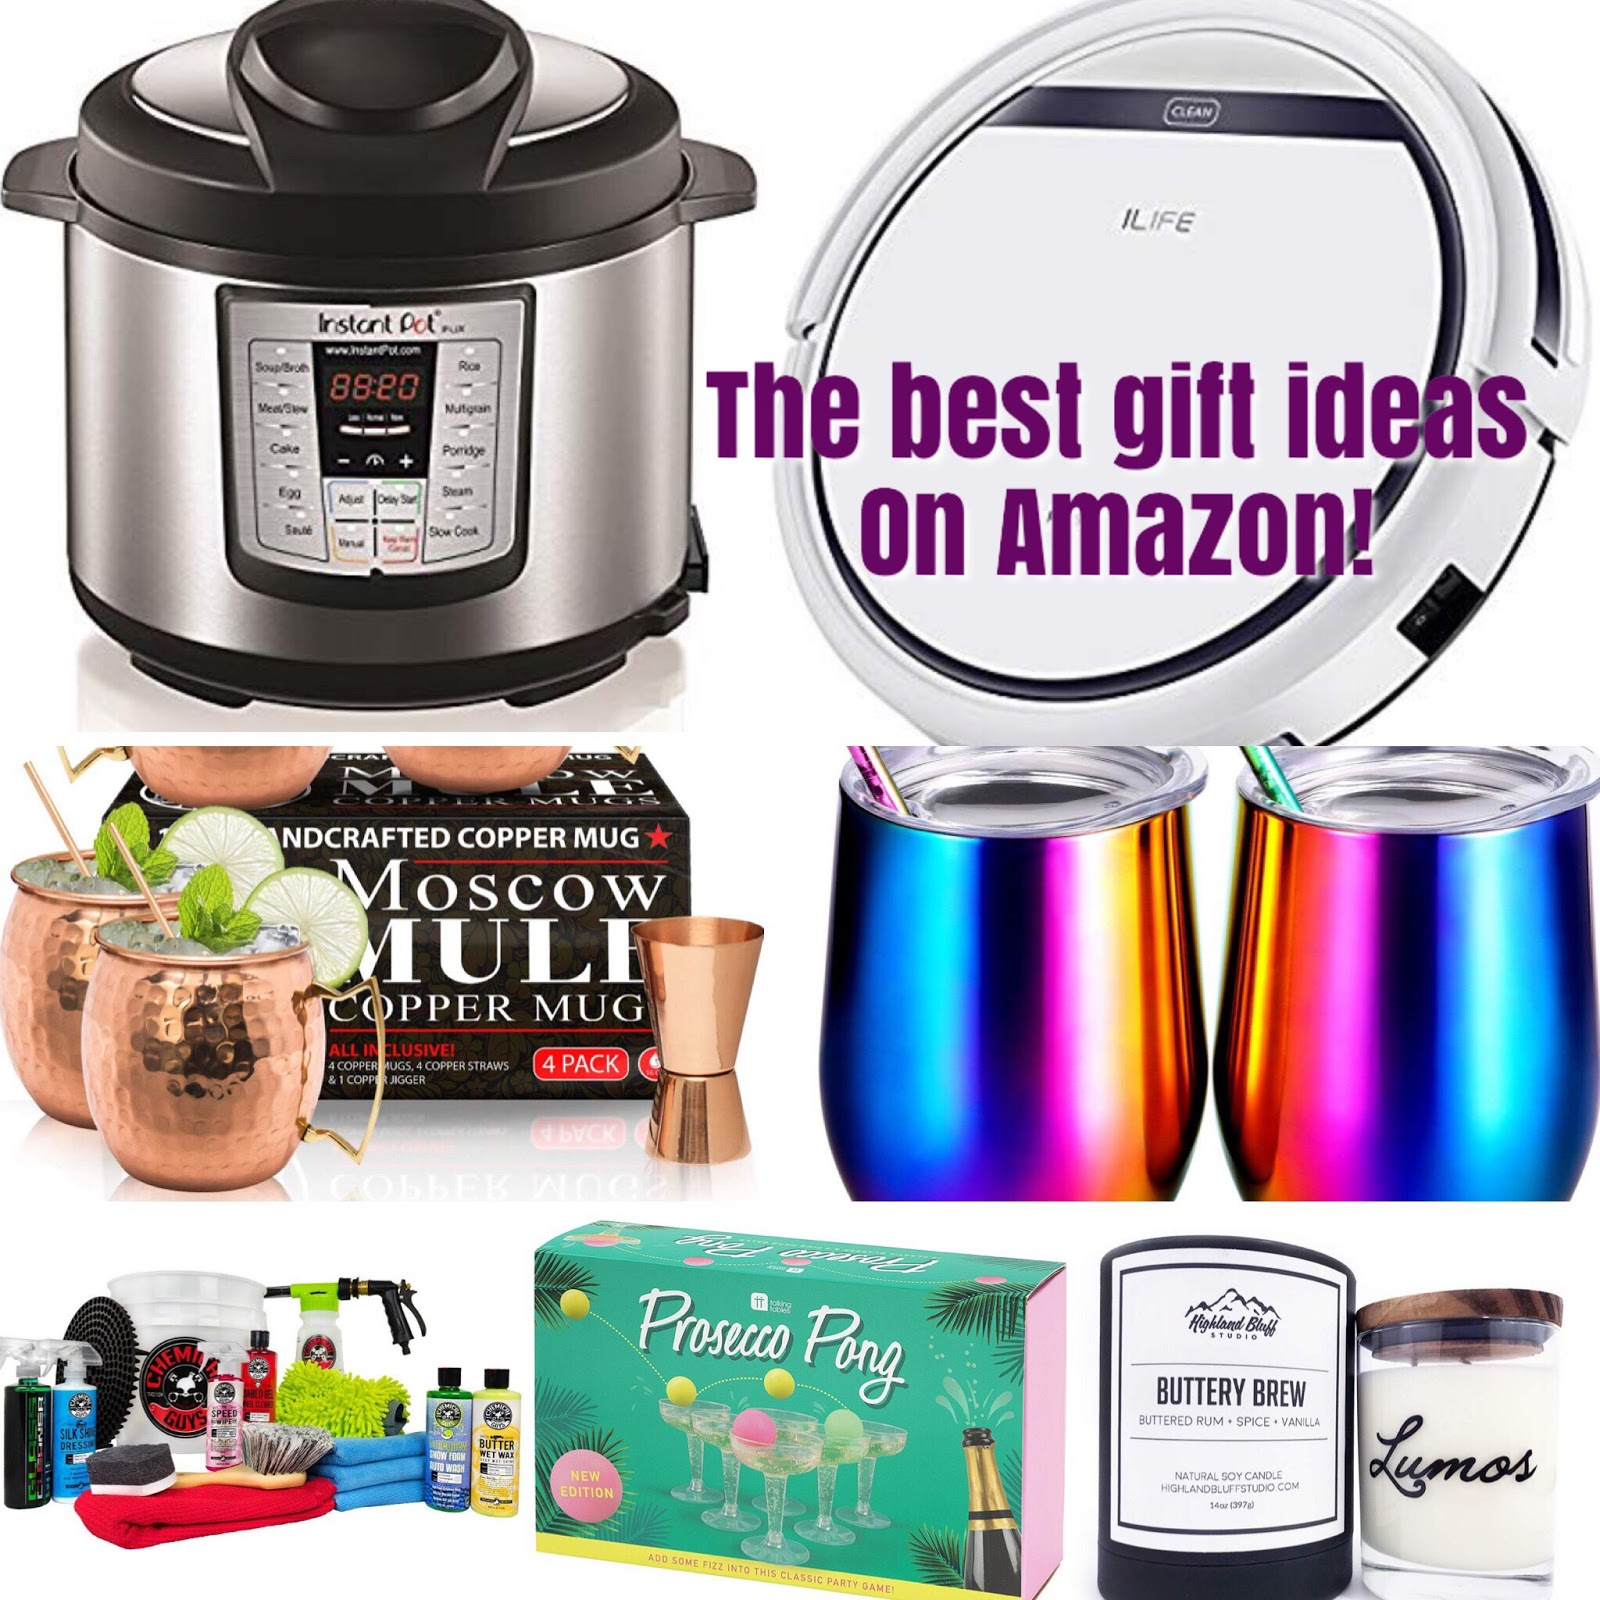 edf2b402df THE ULTIMATE AMAZON GIFT GUIDE FOR EVERYONE ON YOUR LIST! - The Glam ...